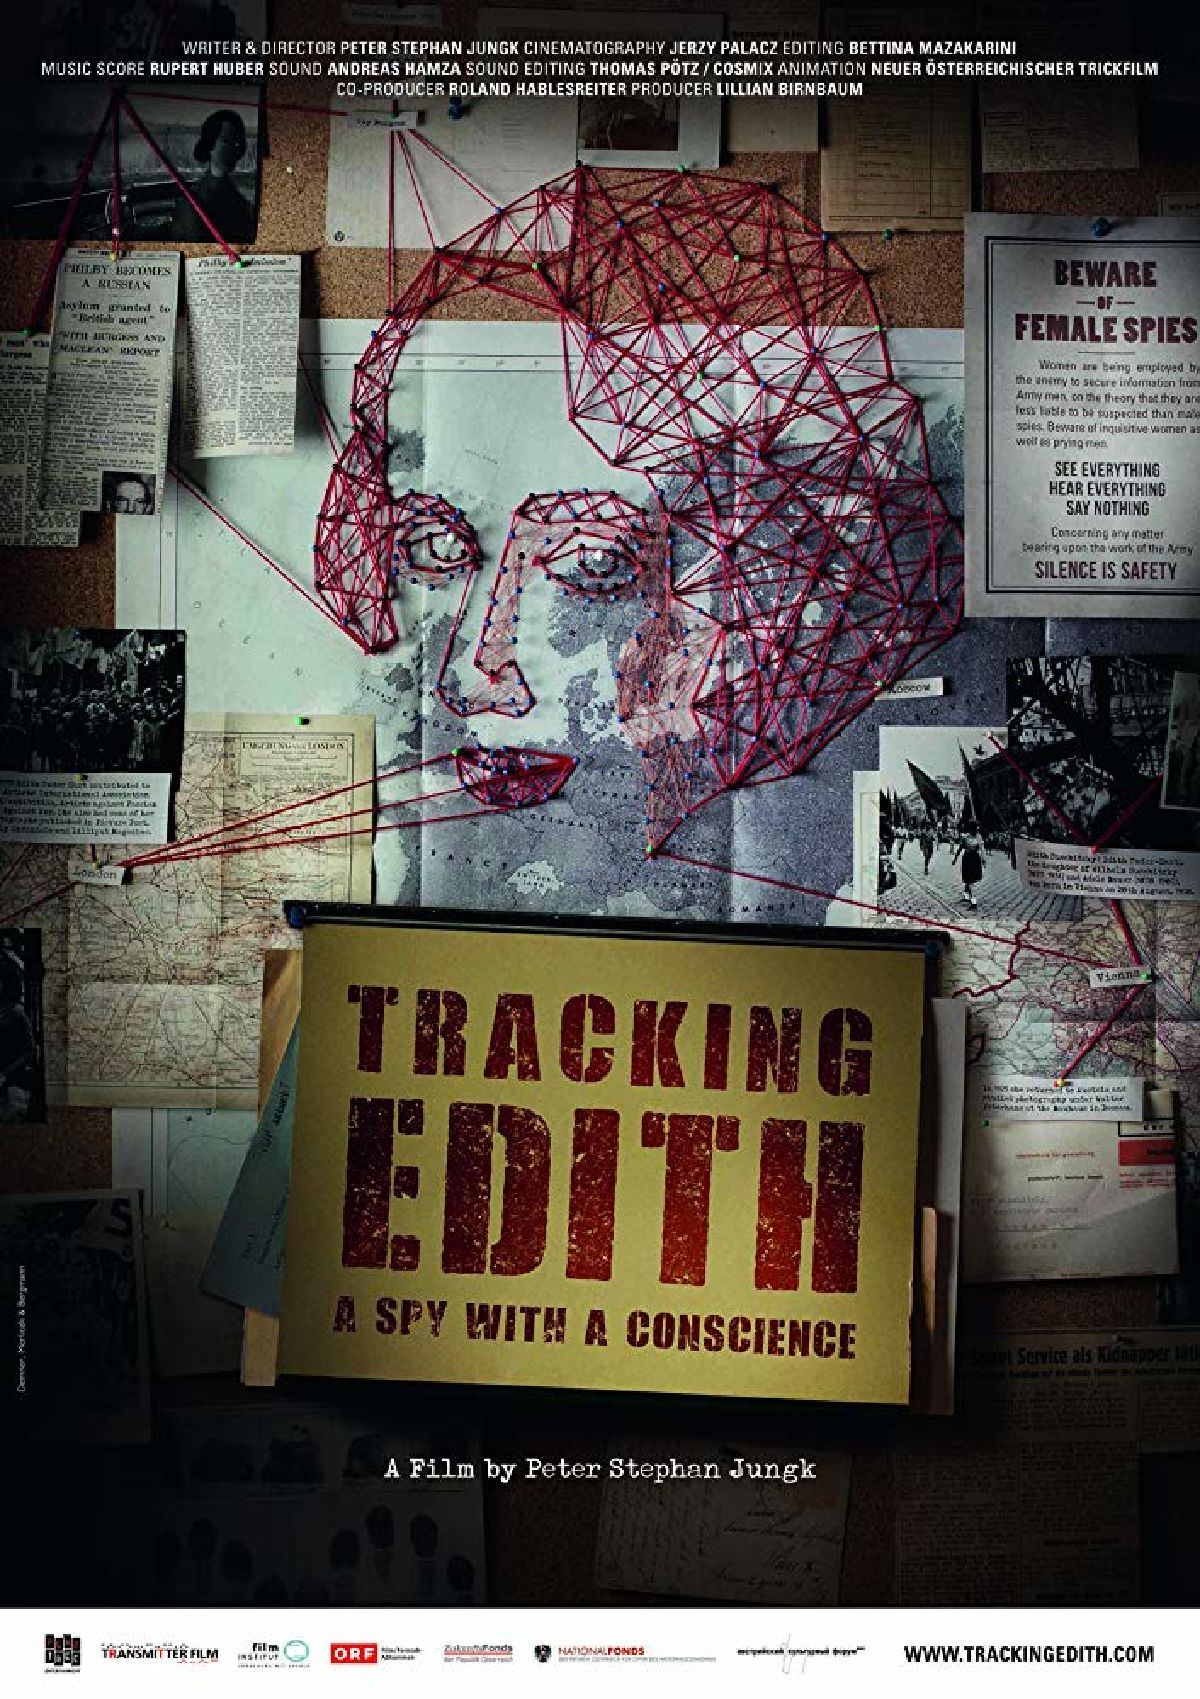 'Tracking Edith' movie poster